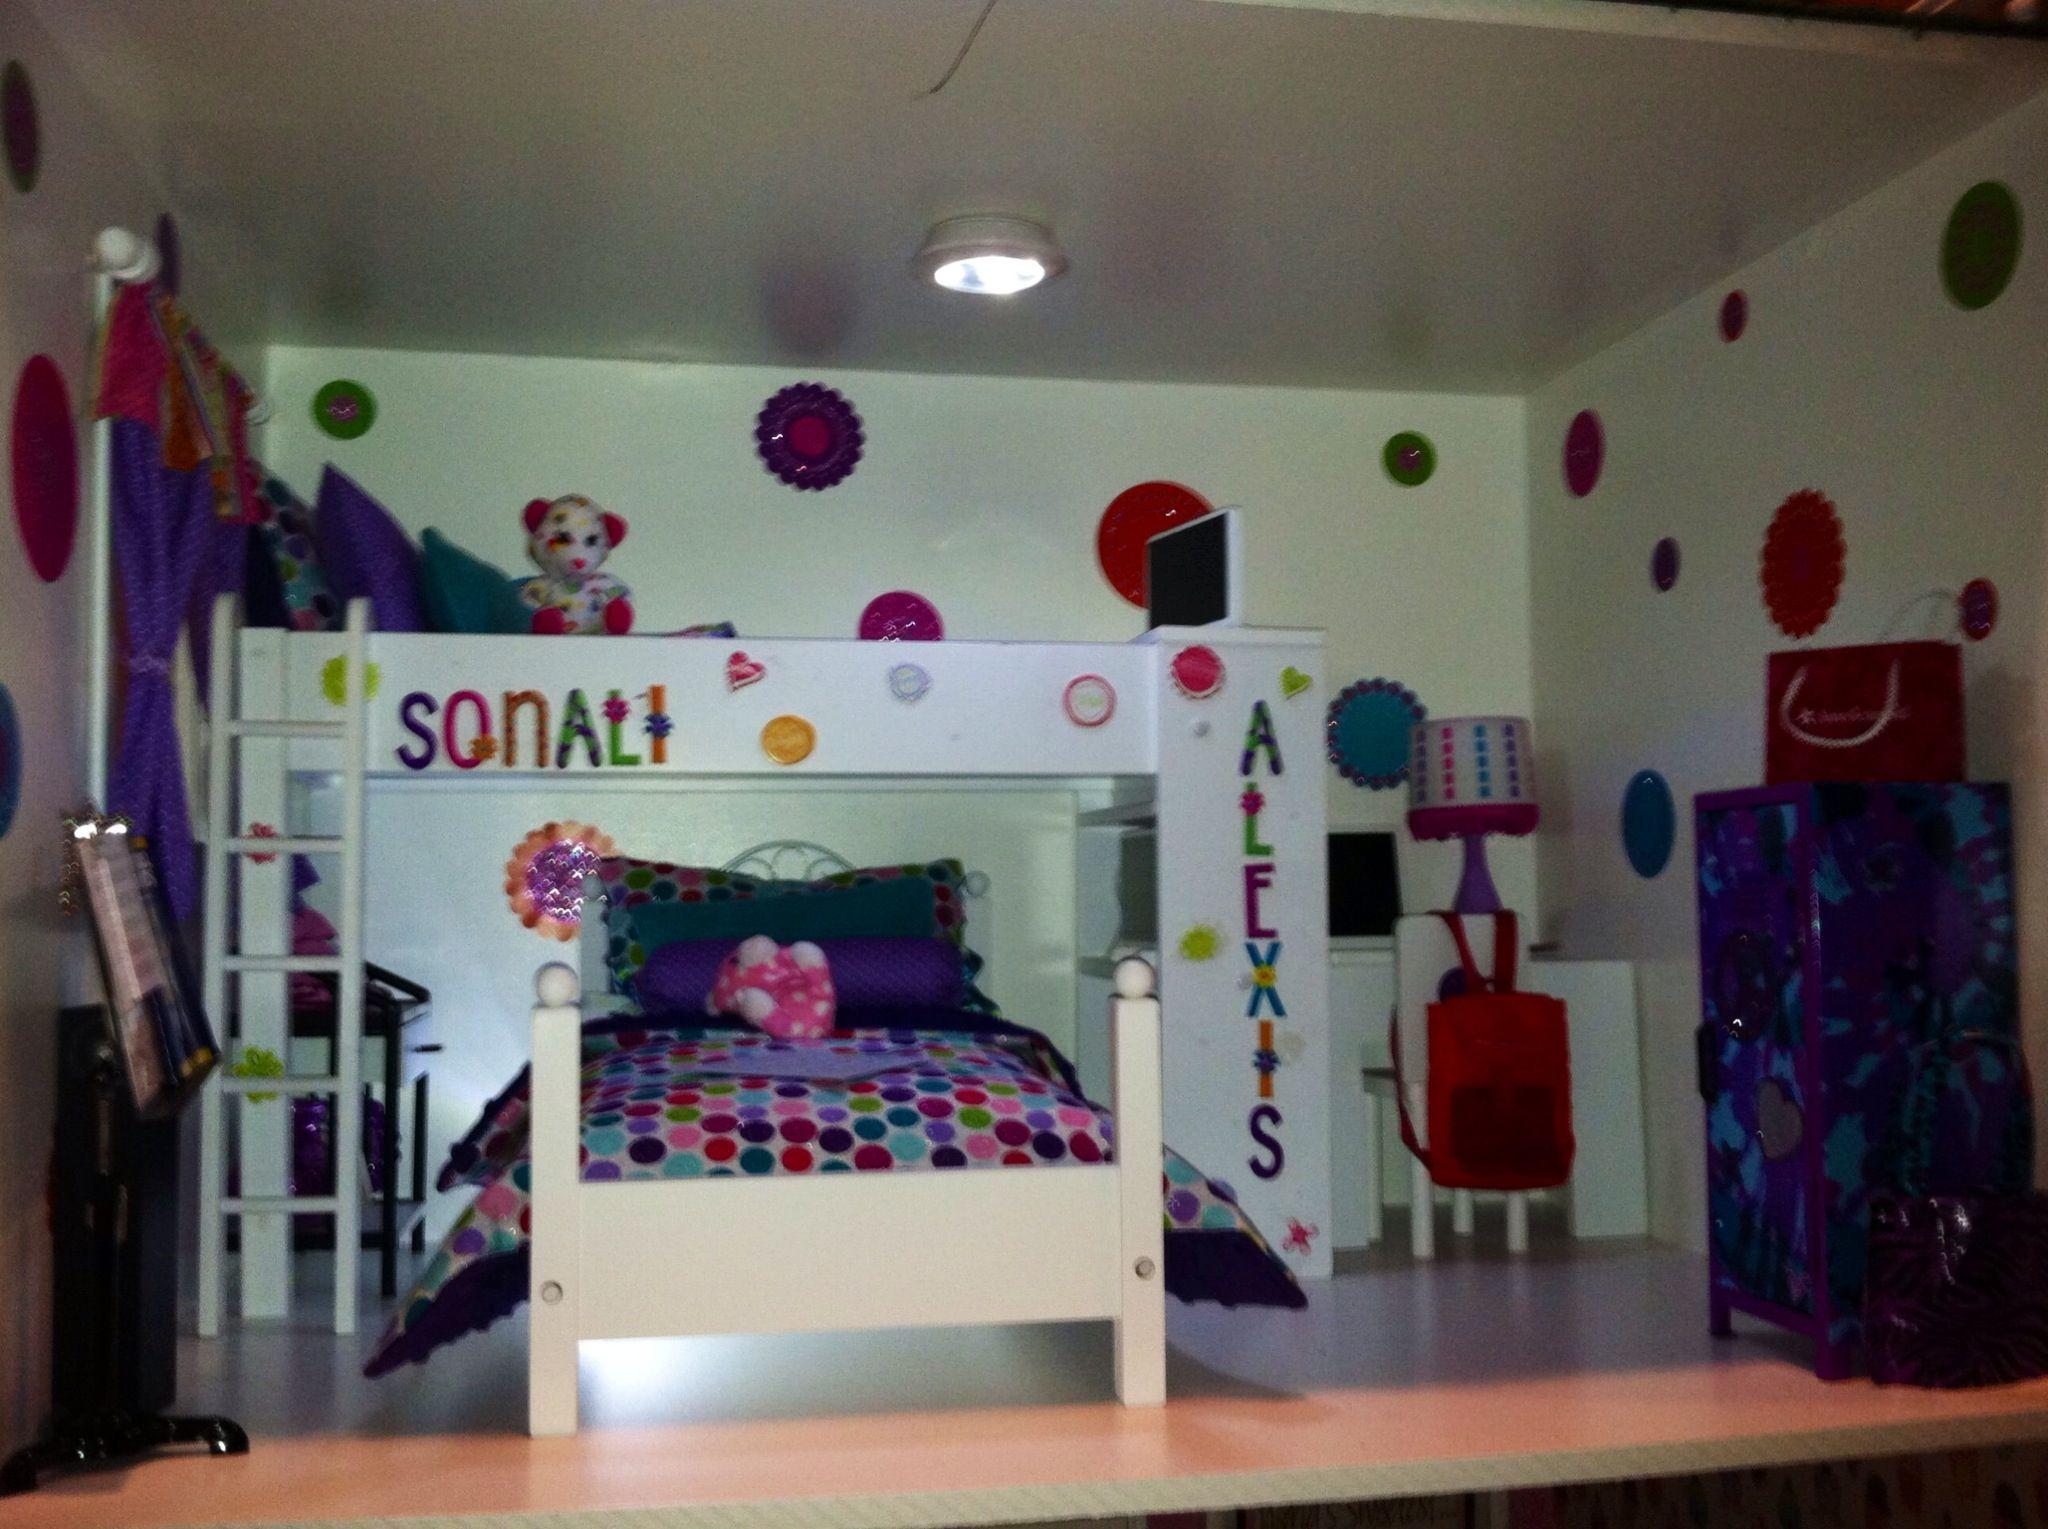 Sonali and Alexis s bedroom  Loft bed from Toys r Us Journey Girl  Lower. Journey Girl Bunk Bed Set And Bedroom Ideas   Bunk Bed   Pinterest